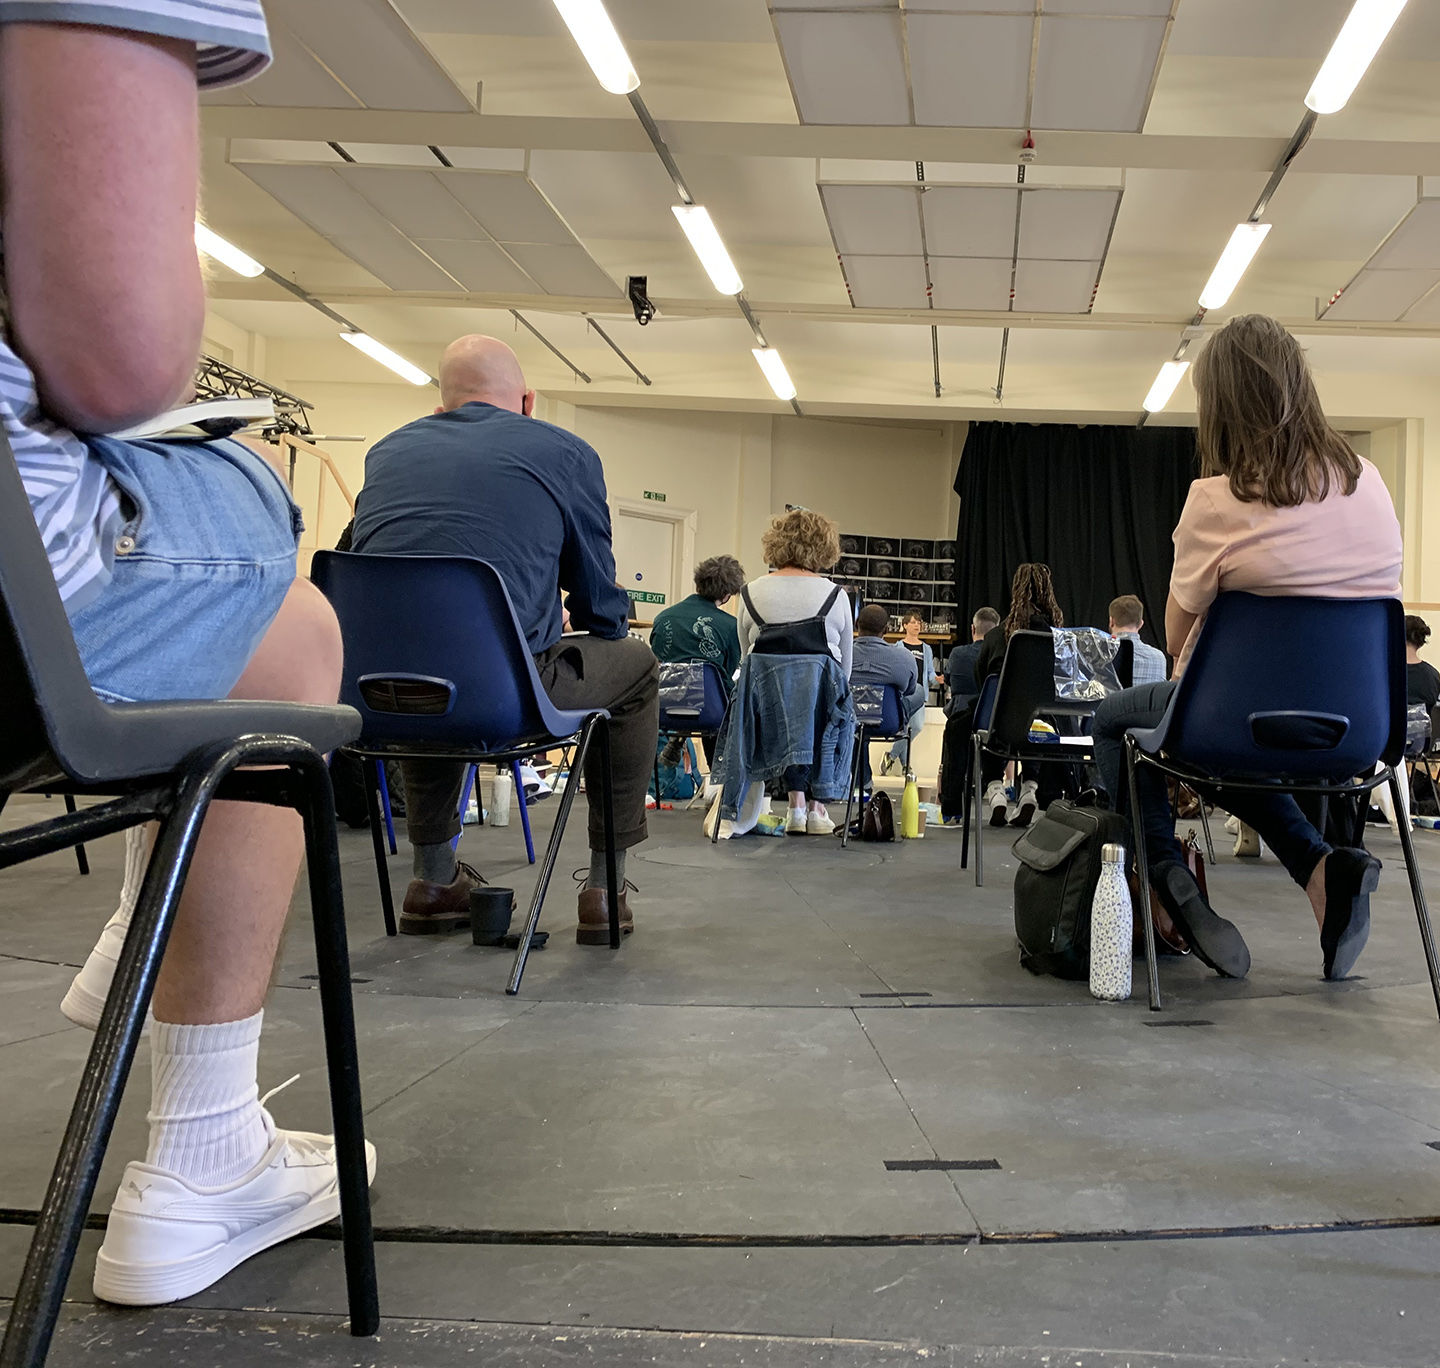 The first week of rehearsals